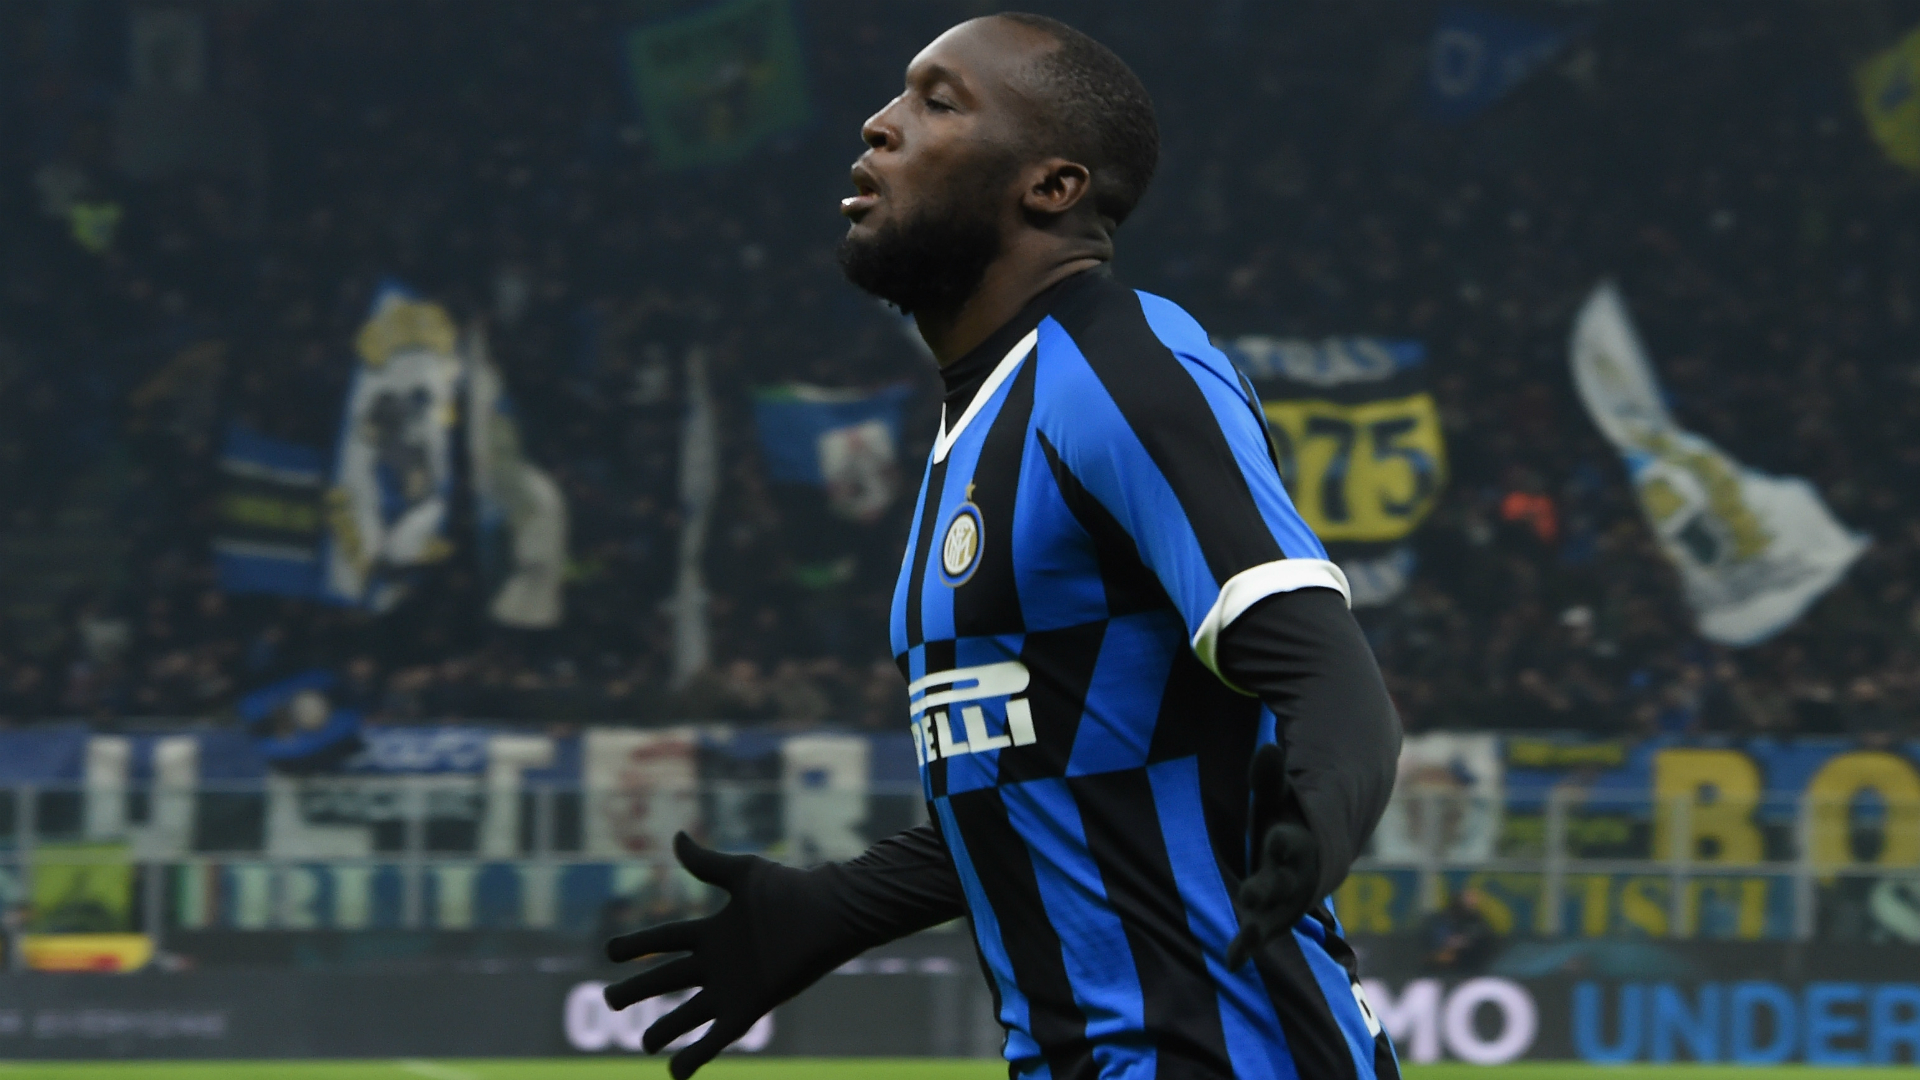 Romelu Lukaku reflected on his goalscoring exploits for Inter against Cagliari in the Coppa Italia on Tuesday.